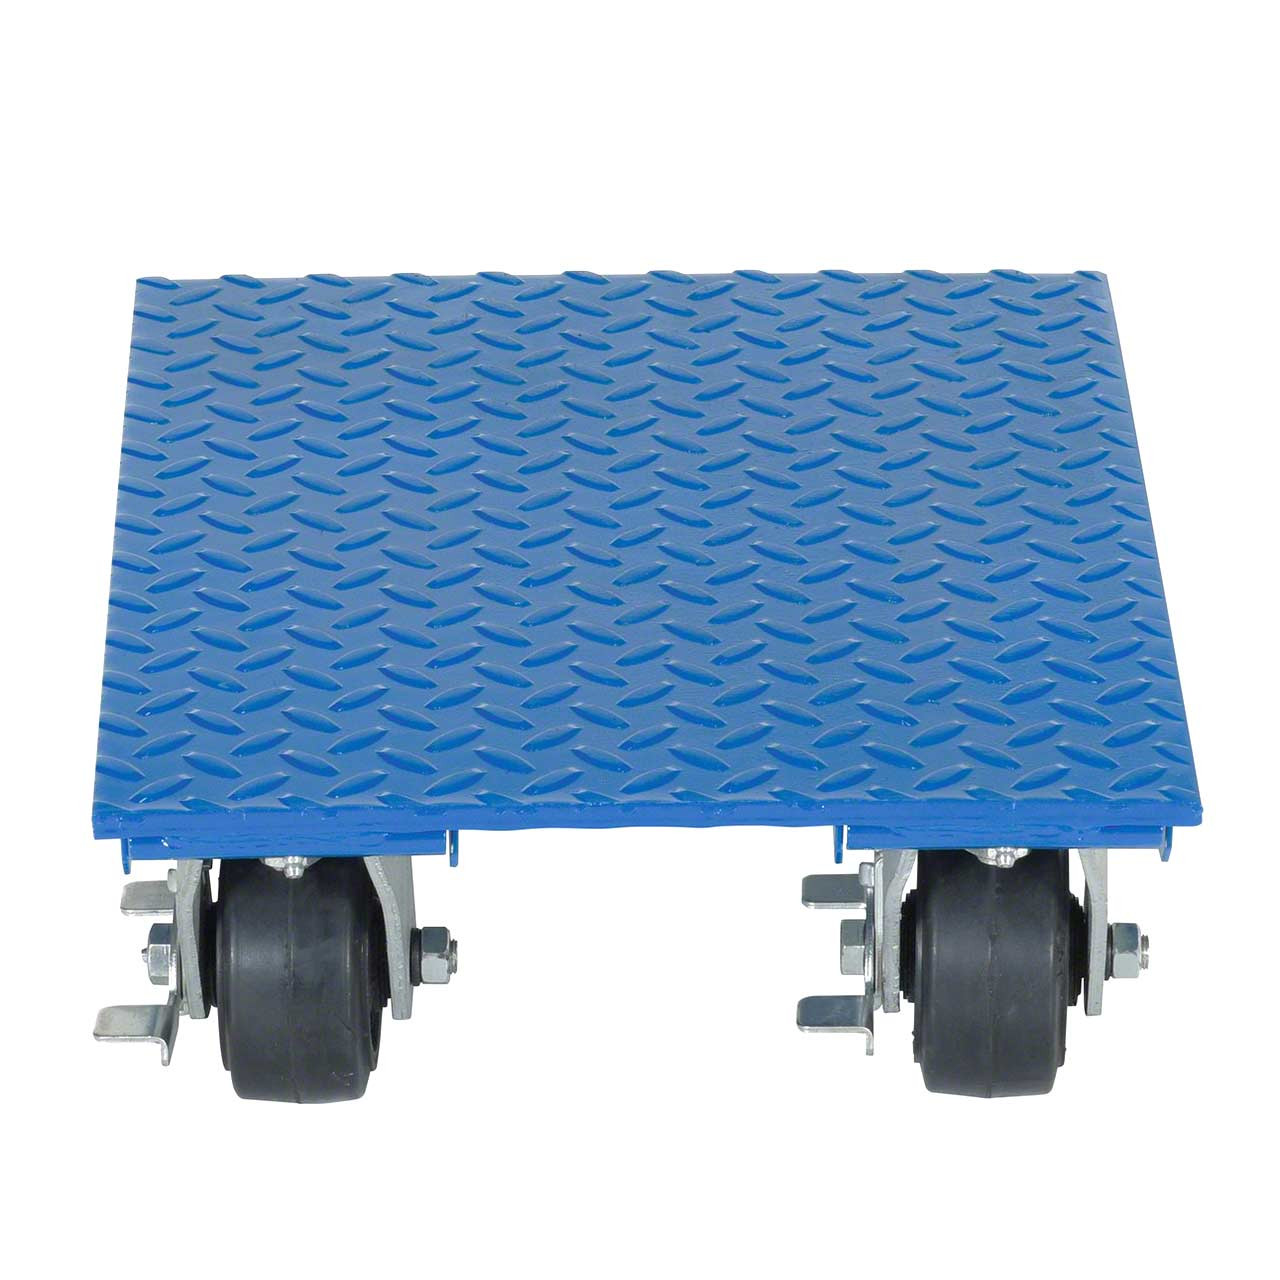 Steel Plate Dolly Front View